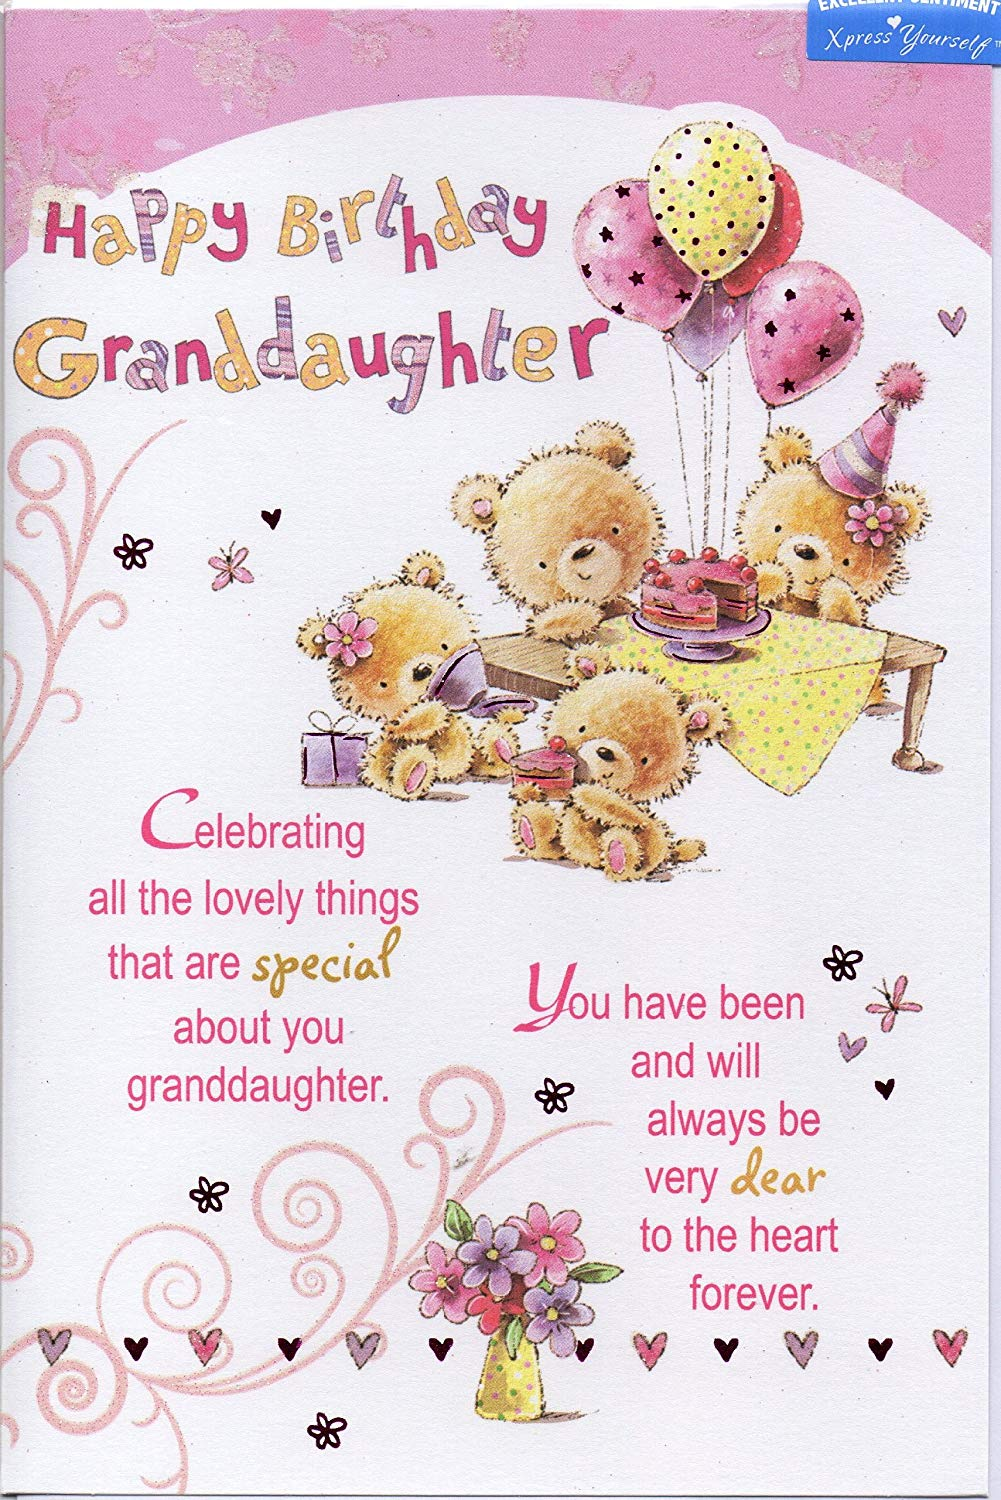 happy birthday granddaughter images for facebook ; A1HhUQRxZ3L